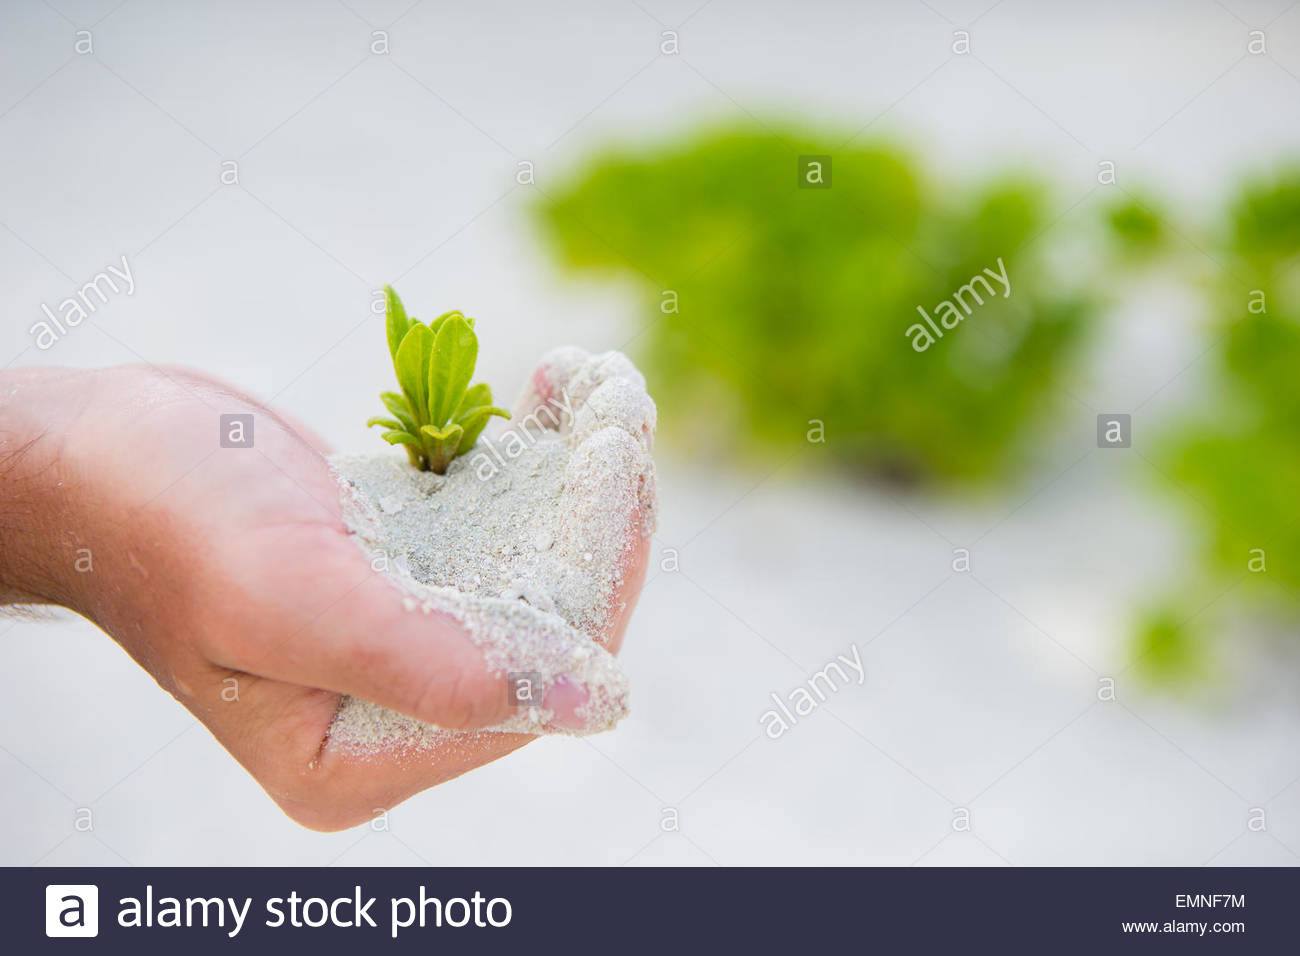 Hands holding green sapling background the white sand Stock Photo 1300x956